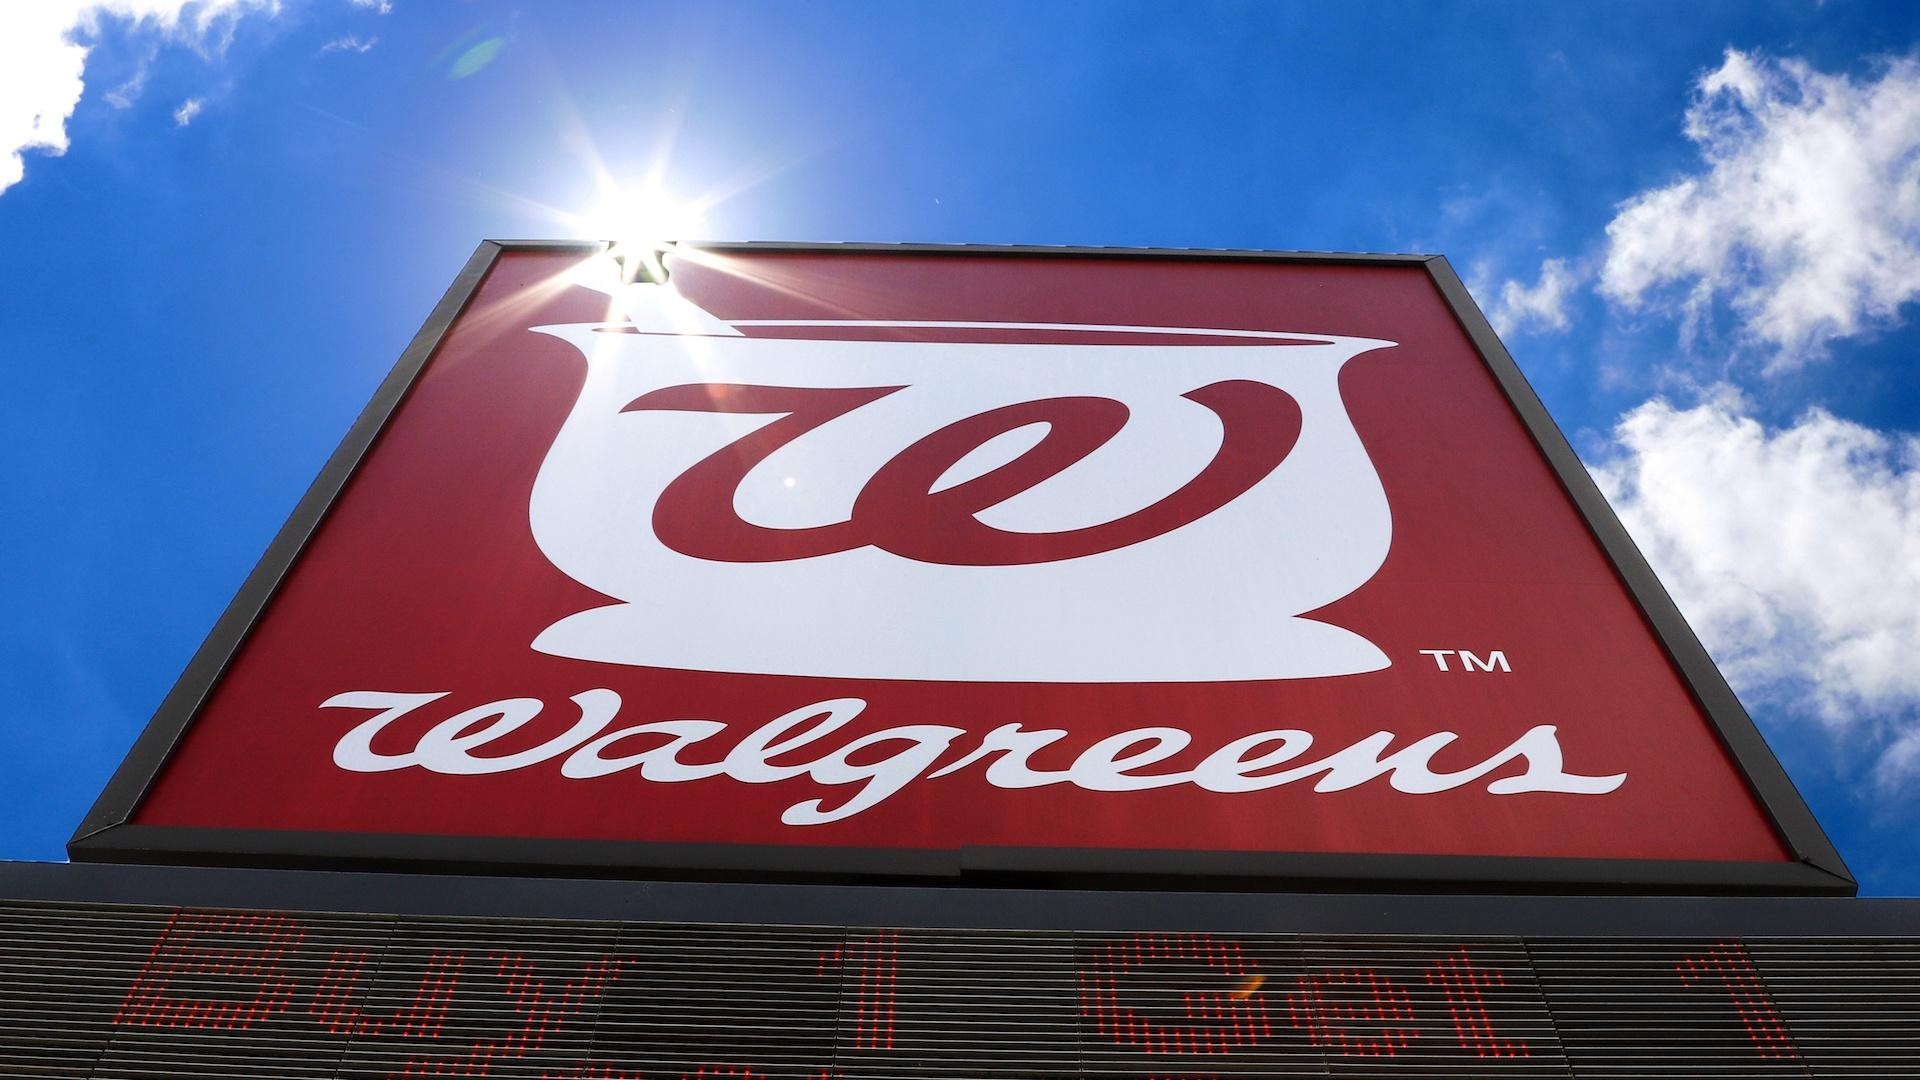 This June 25, 2019, file photo shows the sign outside a Walgreens Pharmacy in Pittsburgh. Walgreens Boots Alliance will sell its pharmaceutical wholesaler business to AmerisourceBergen in $6.5 billion cash and stock deal. (AP Photo/Gene J. Puskar, File)